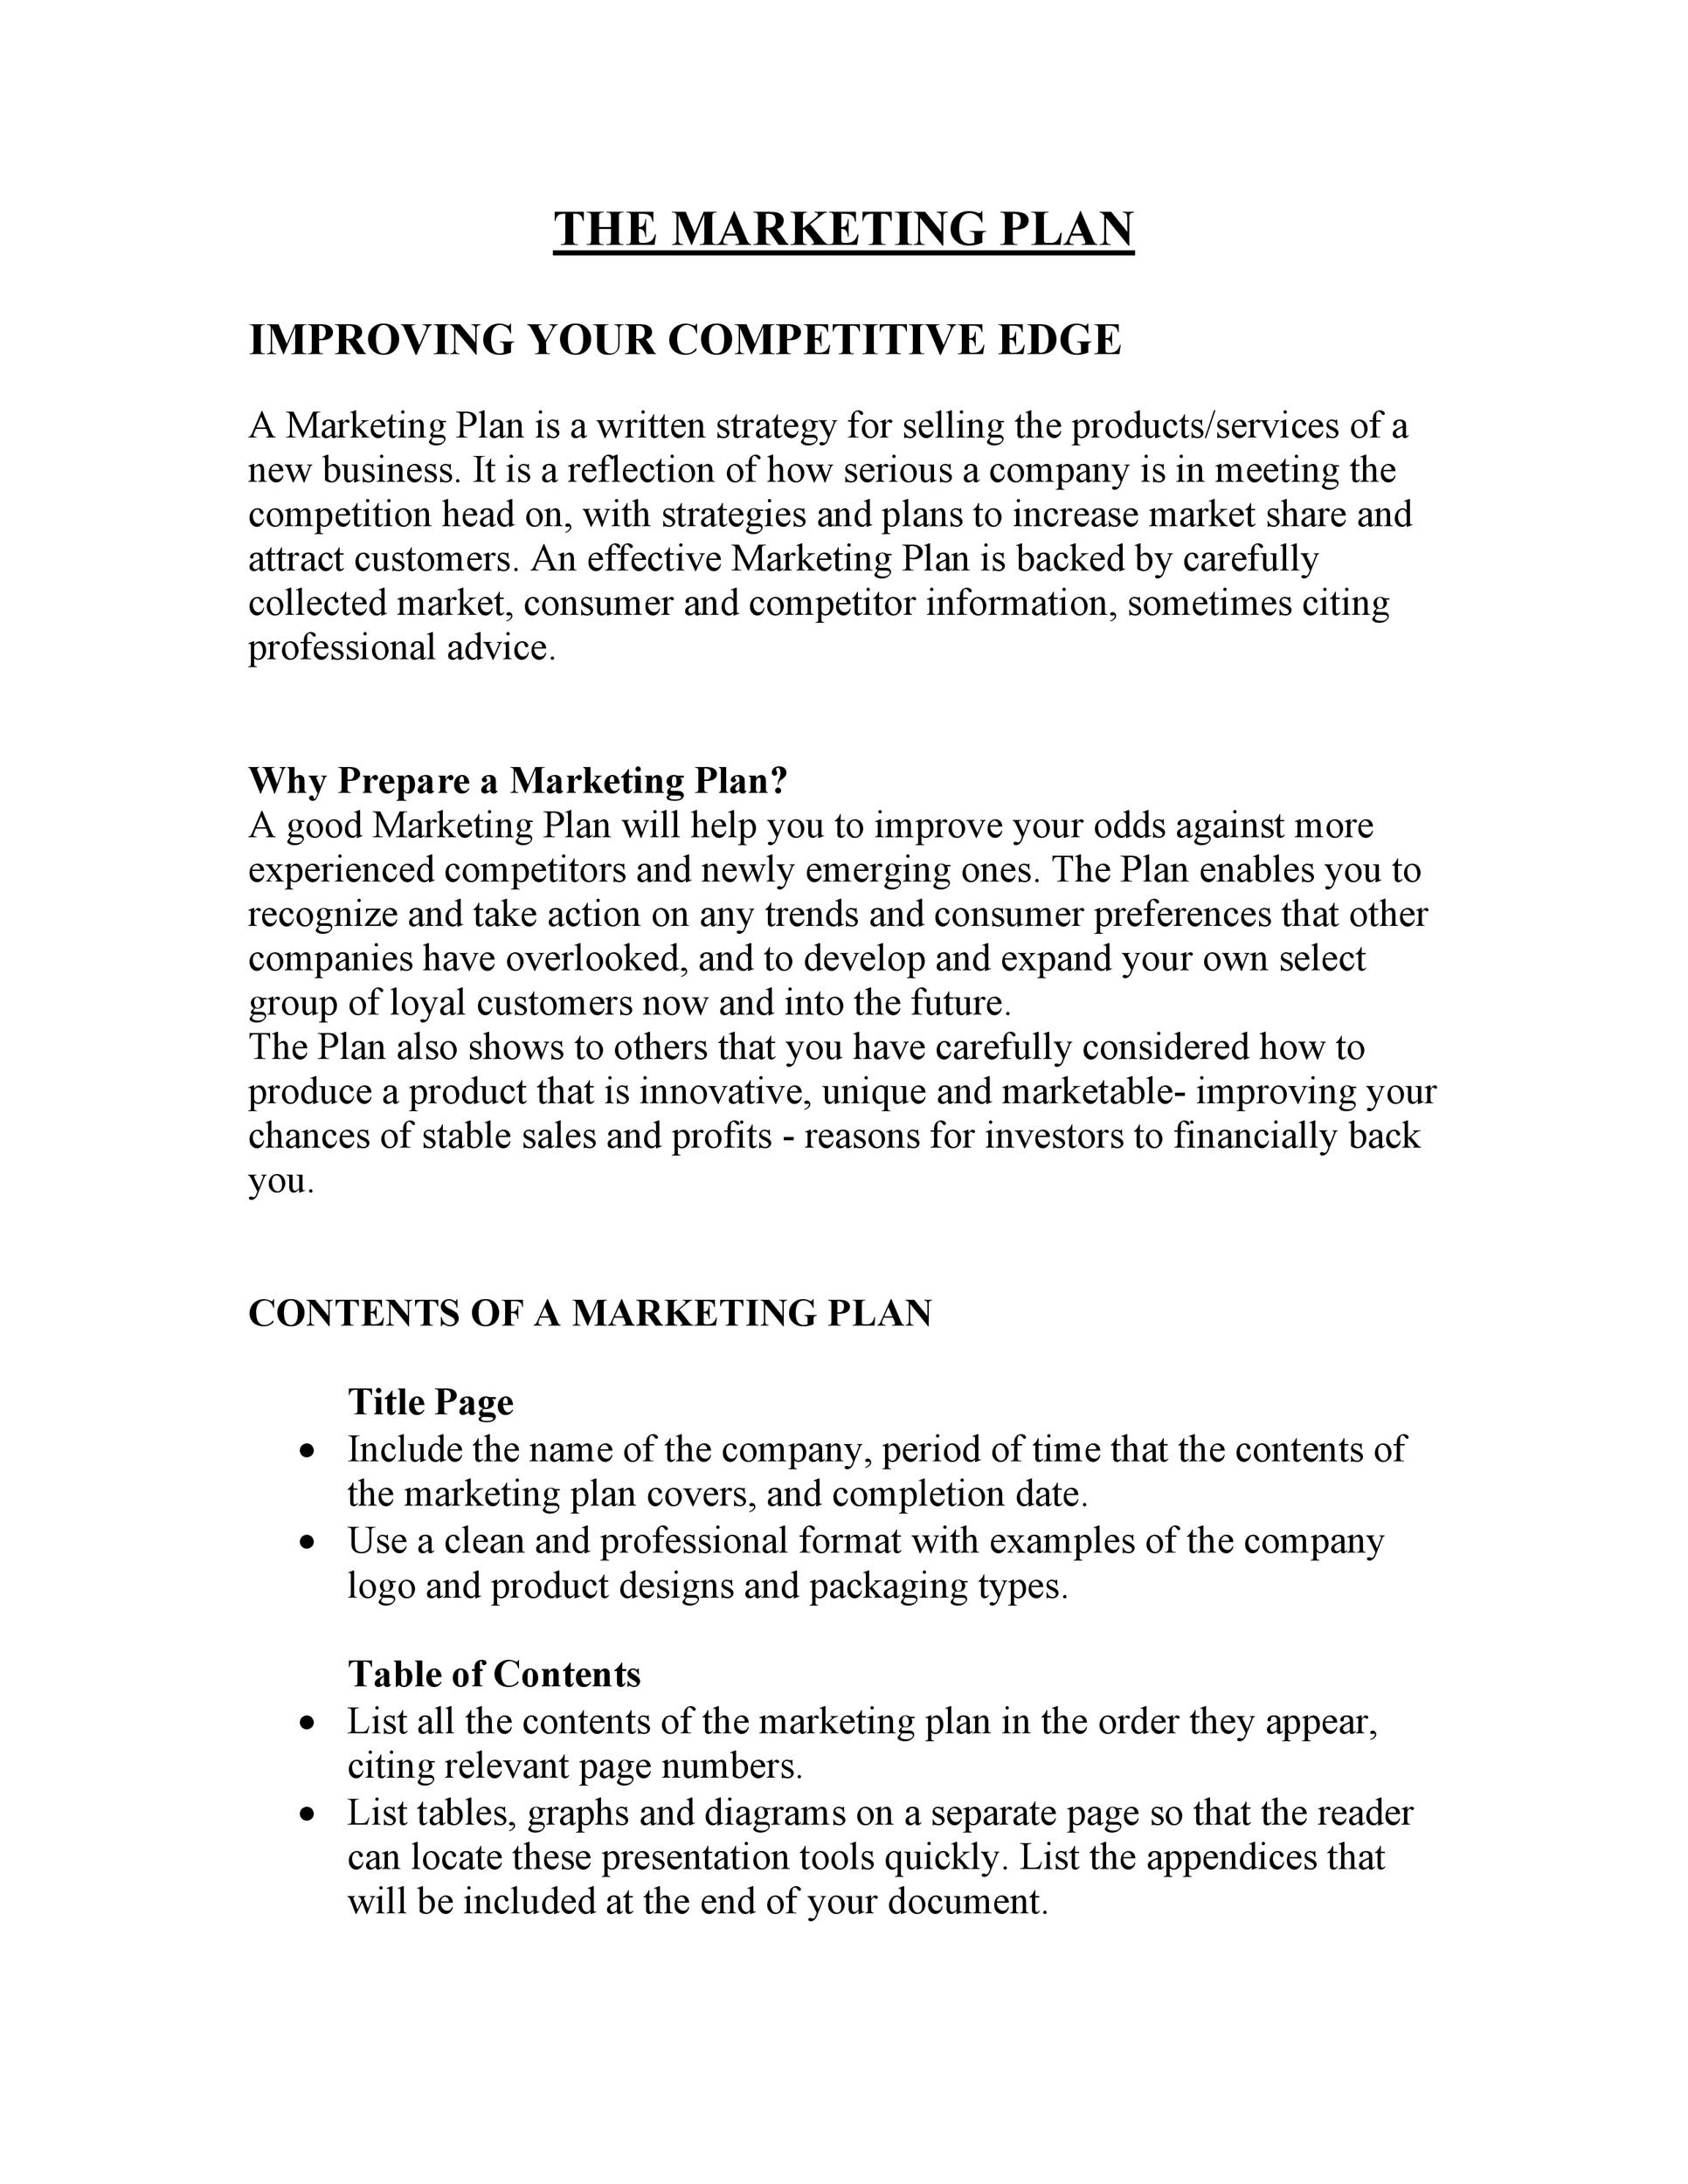 Marketing Plan Outline Template | 30 Professional Marketing Plan Templates Template Lab